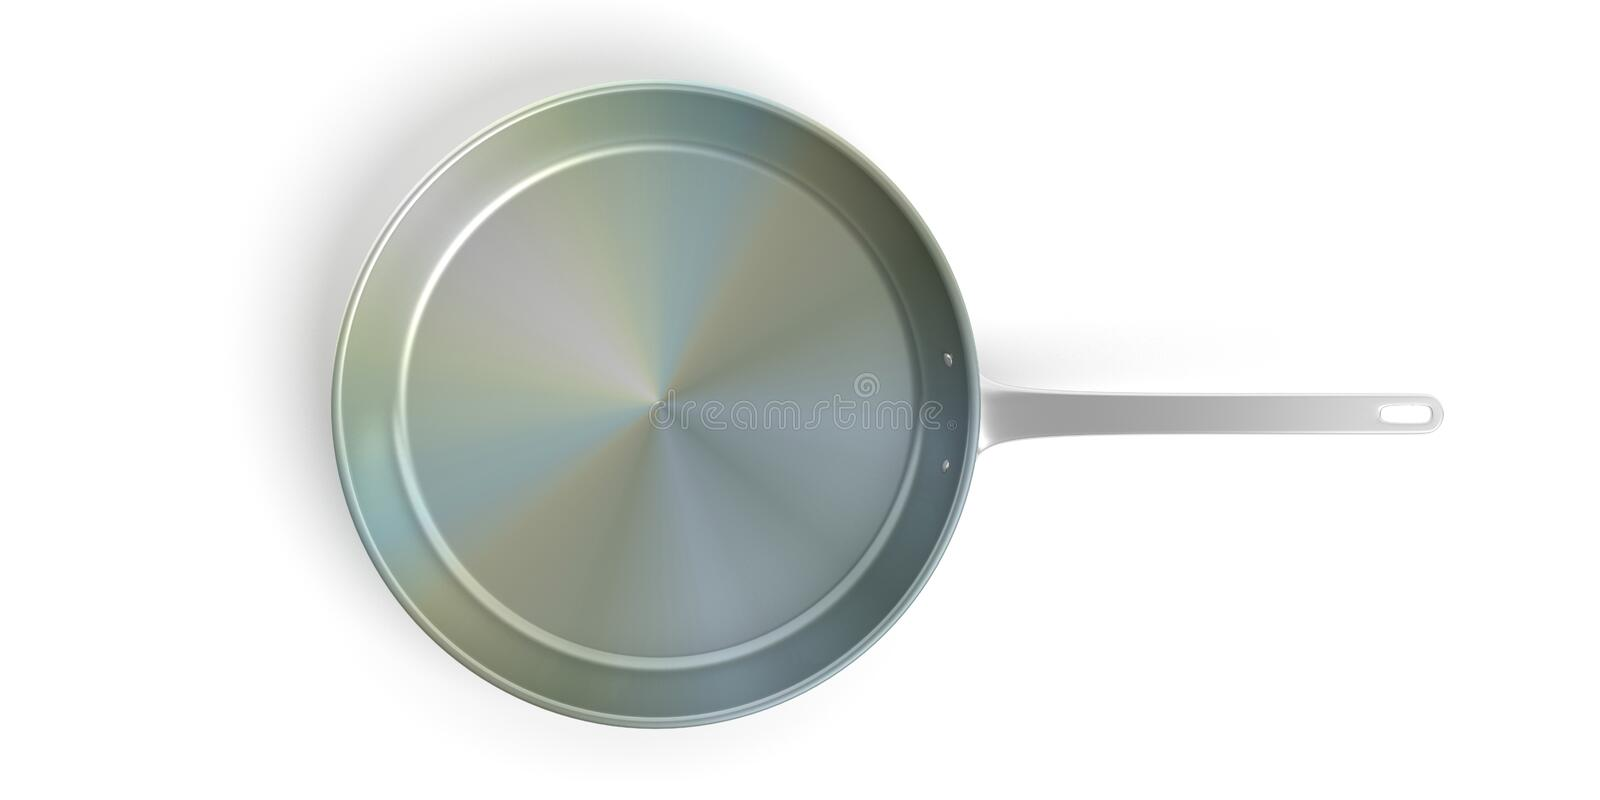 Black stainless steel frying pan isolated on white background. 3d illustration. Chrome empty stainless steel frying pan isolated on white background, top view vector illustration